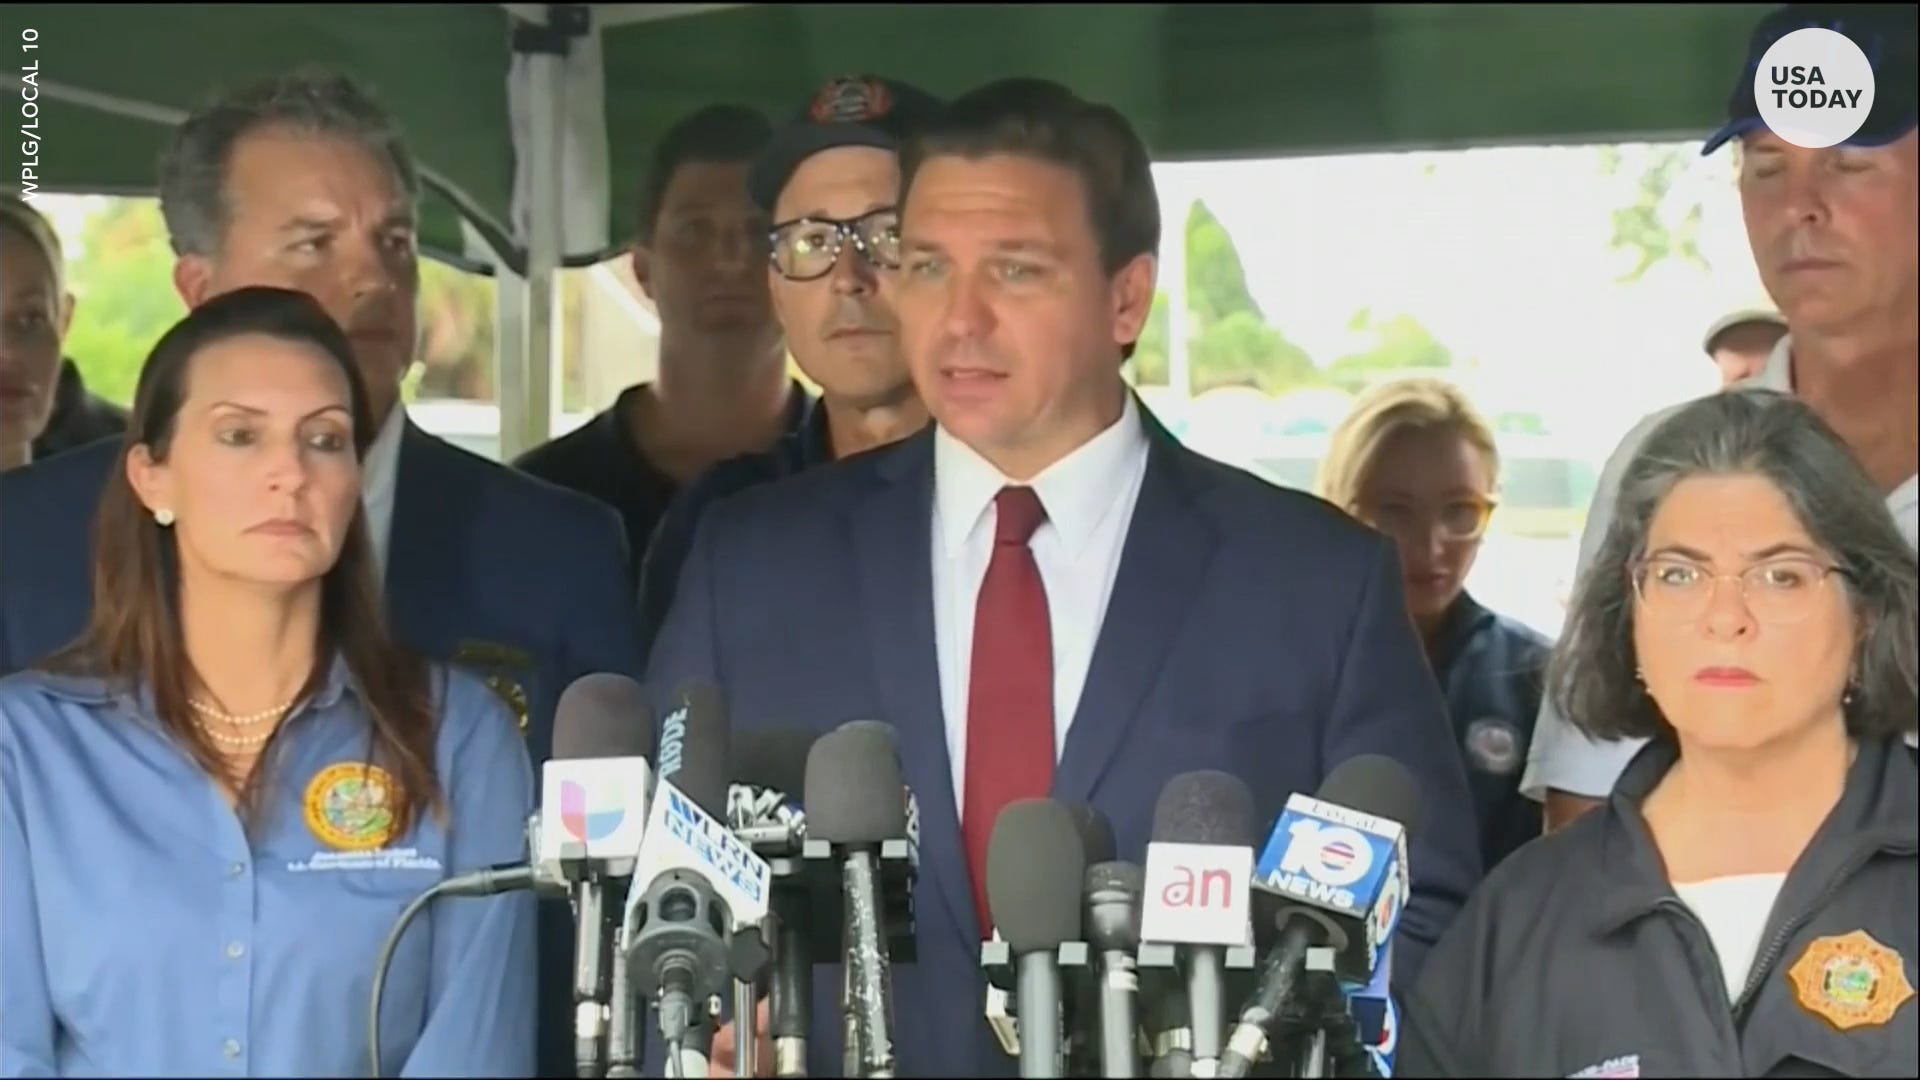 Florida Governor Desantis shares his thoughts after building collapse near Miami